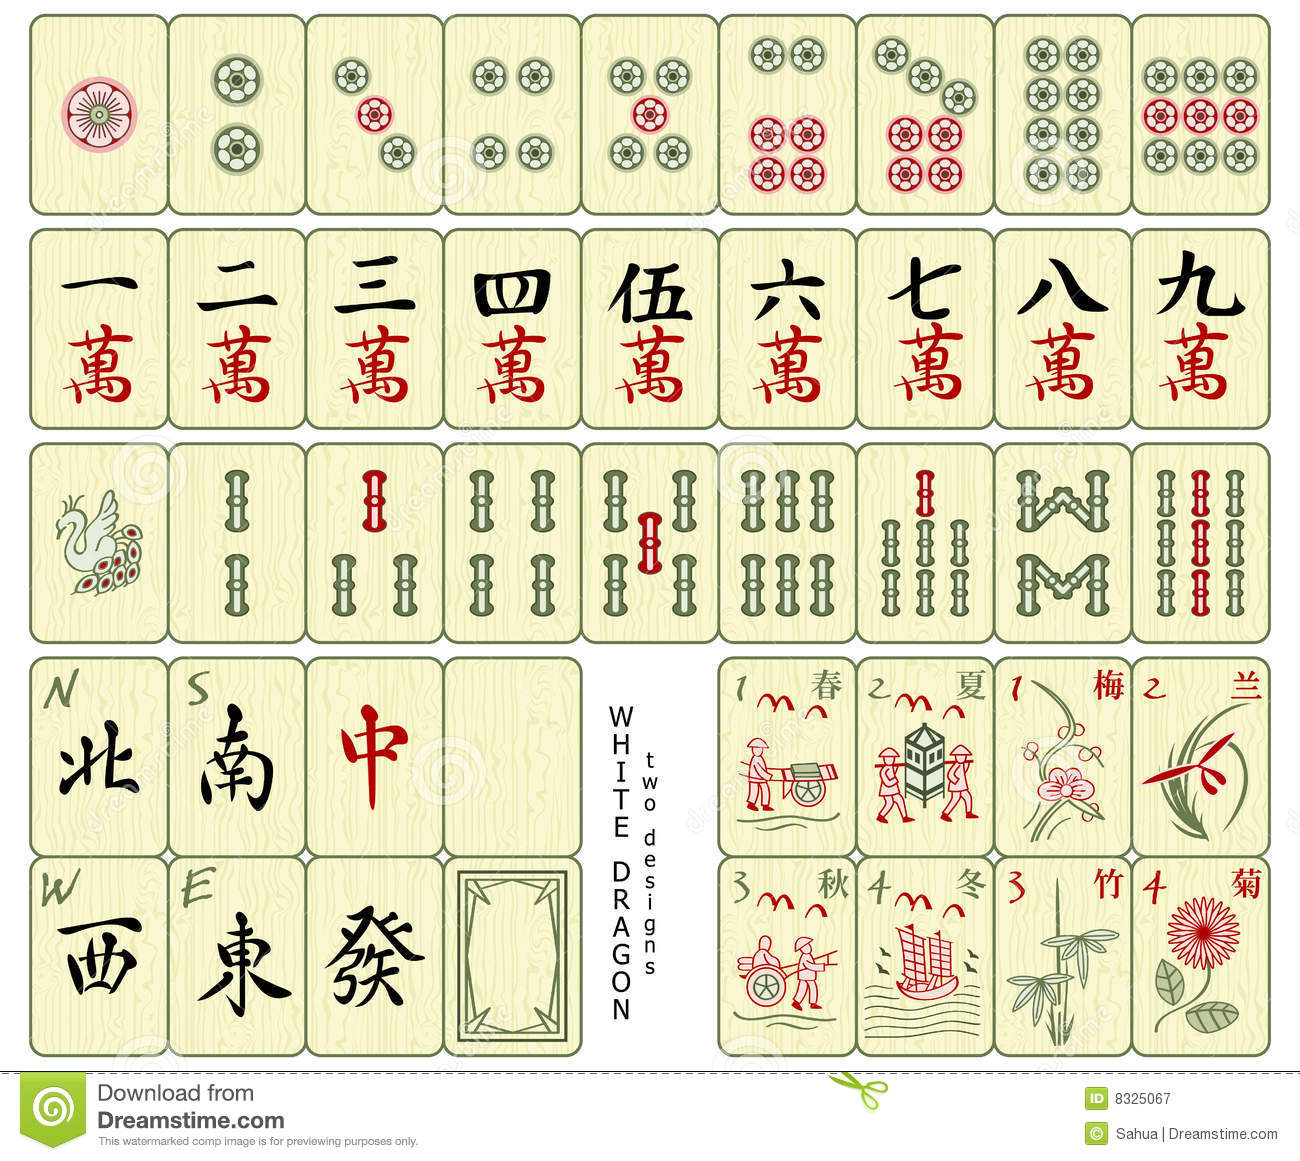 Phoenix Tile Mahjong Tiles Royalty Free Stock Photography - Image: 8325067